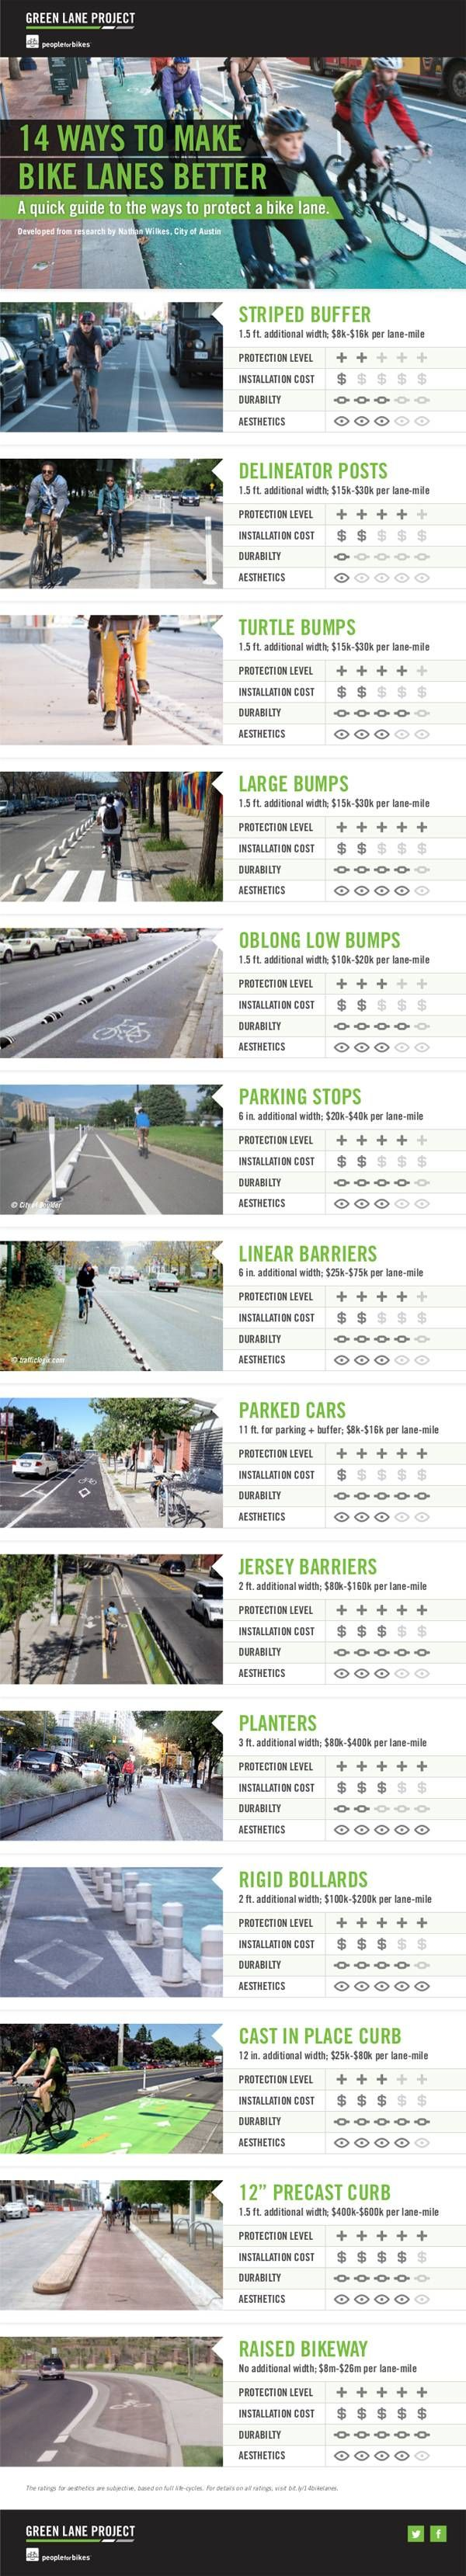 14 Ways to Make Bike Lanes Better